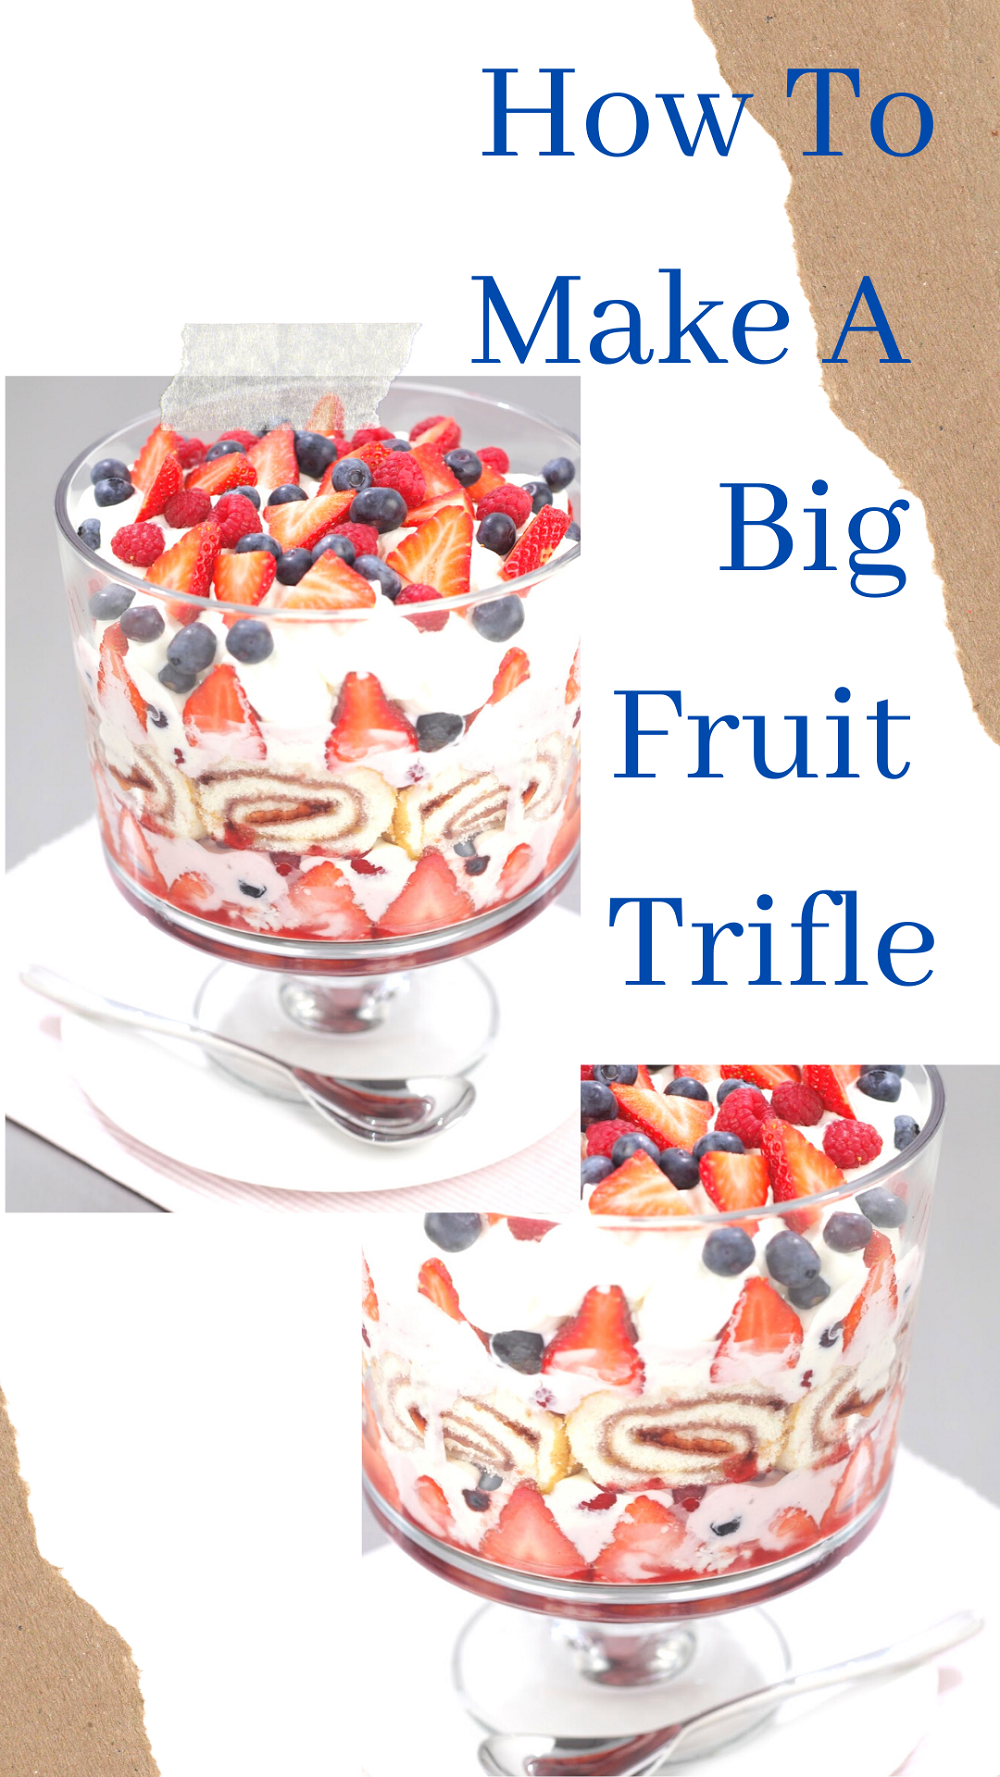 Big Fruit Trifle: Celebrations Not Complete Without One